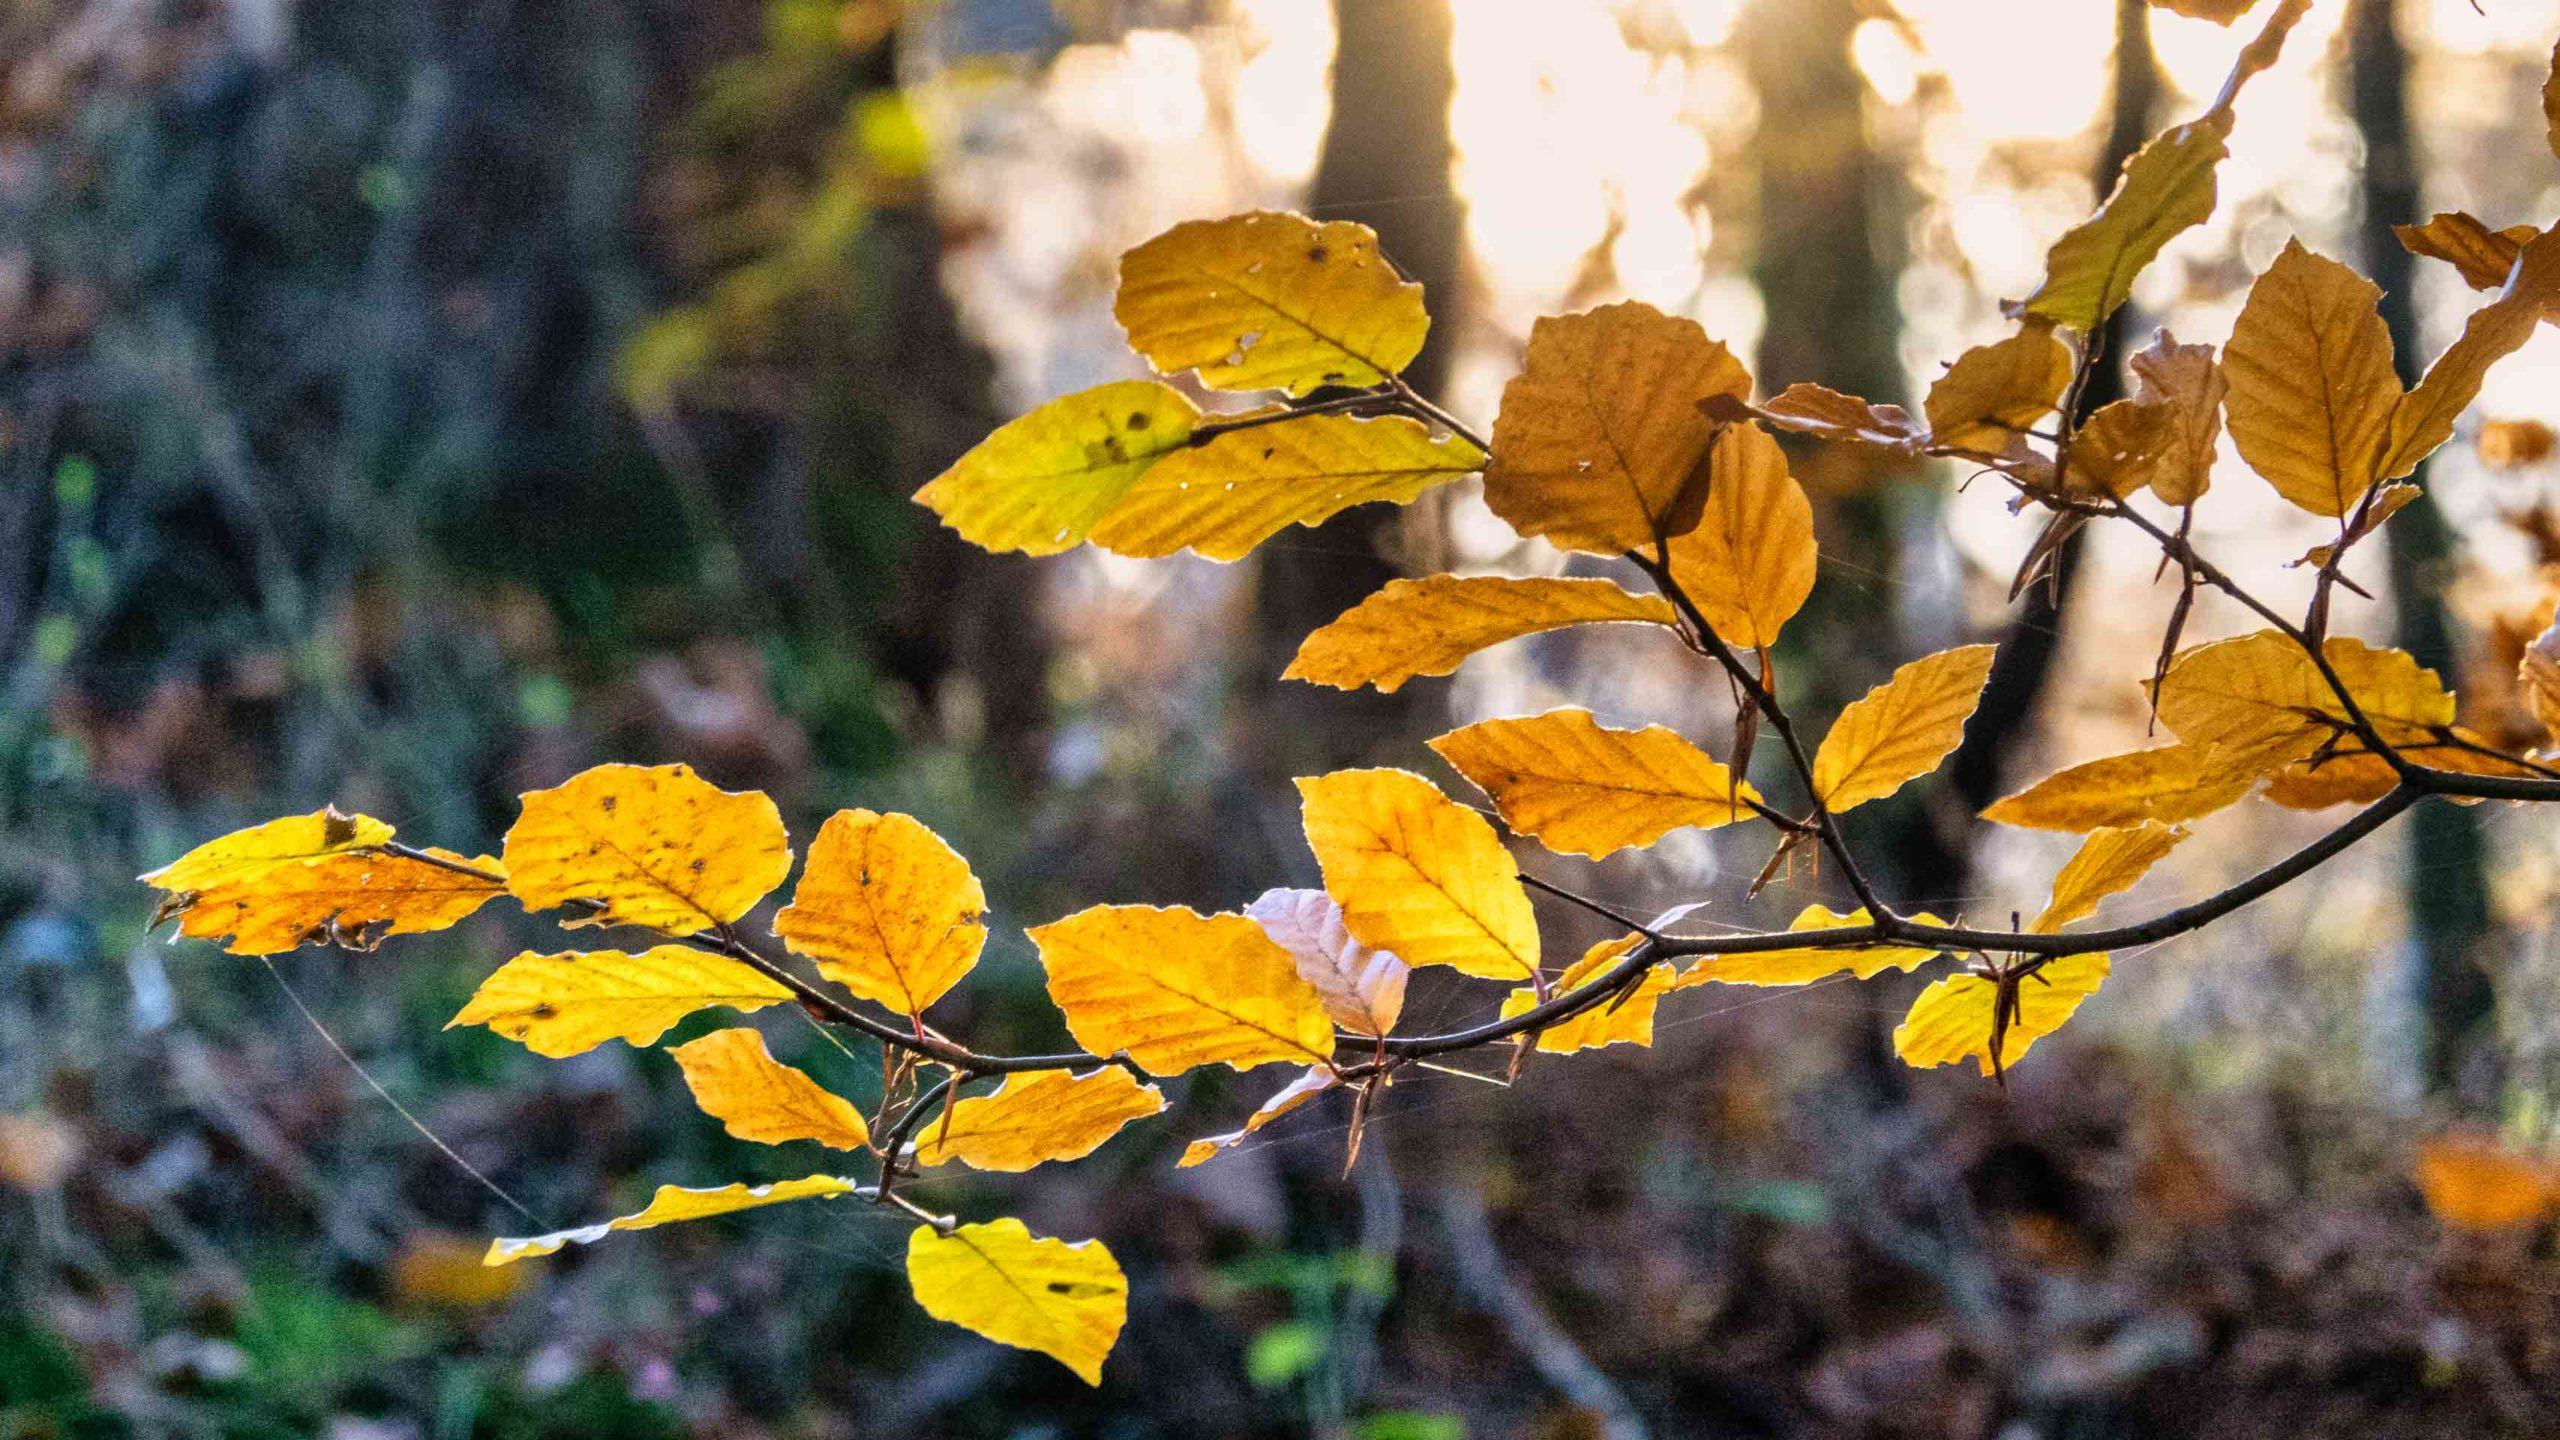 Autumn Beech leaves in Caledonian Forest